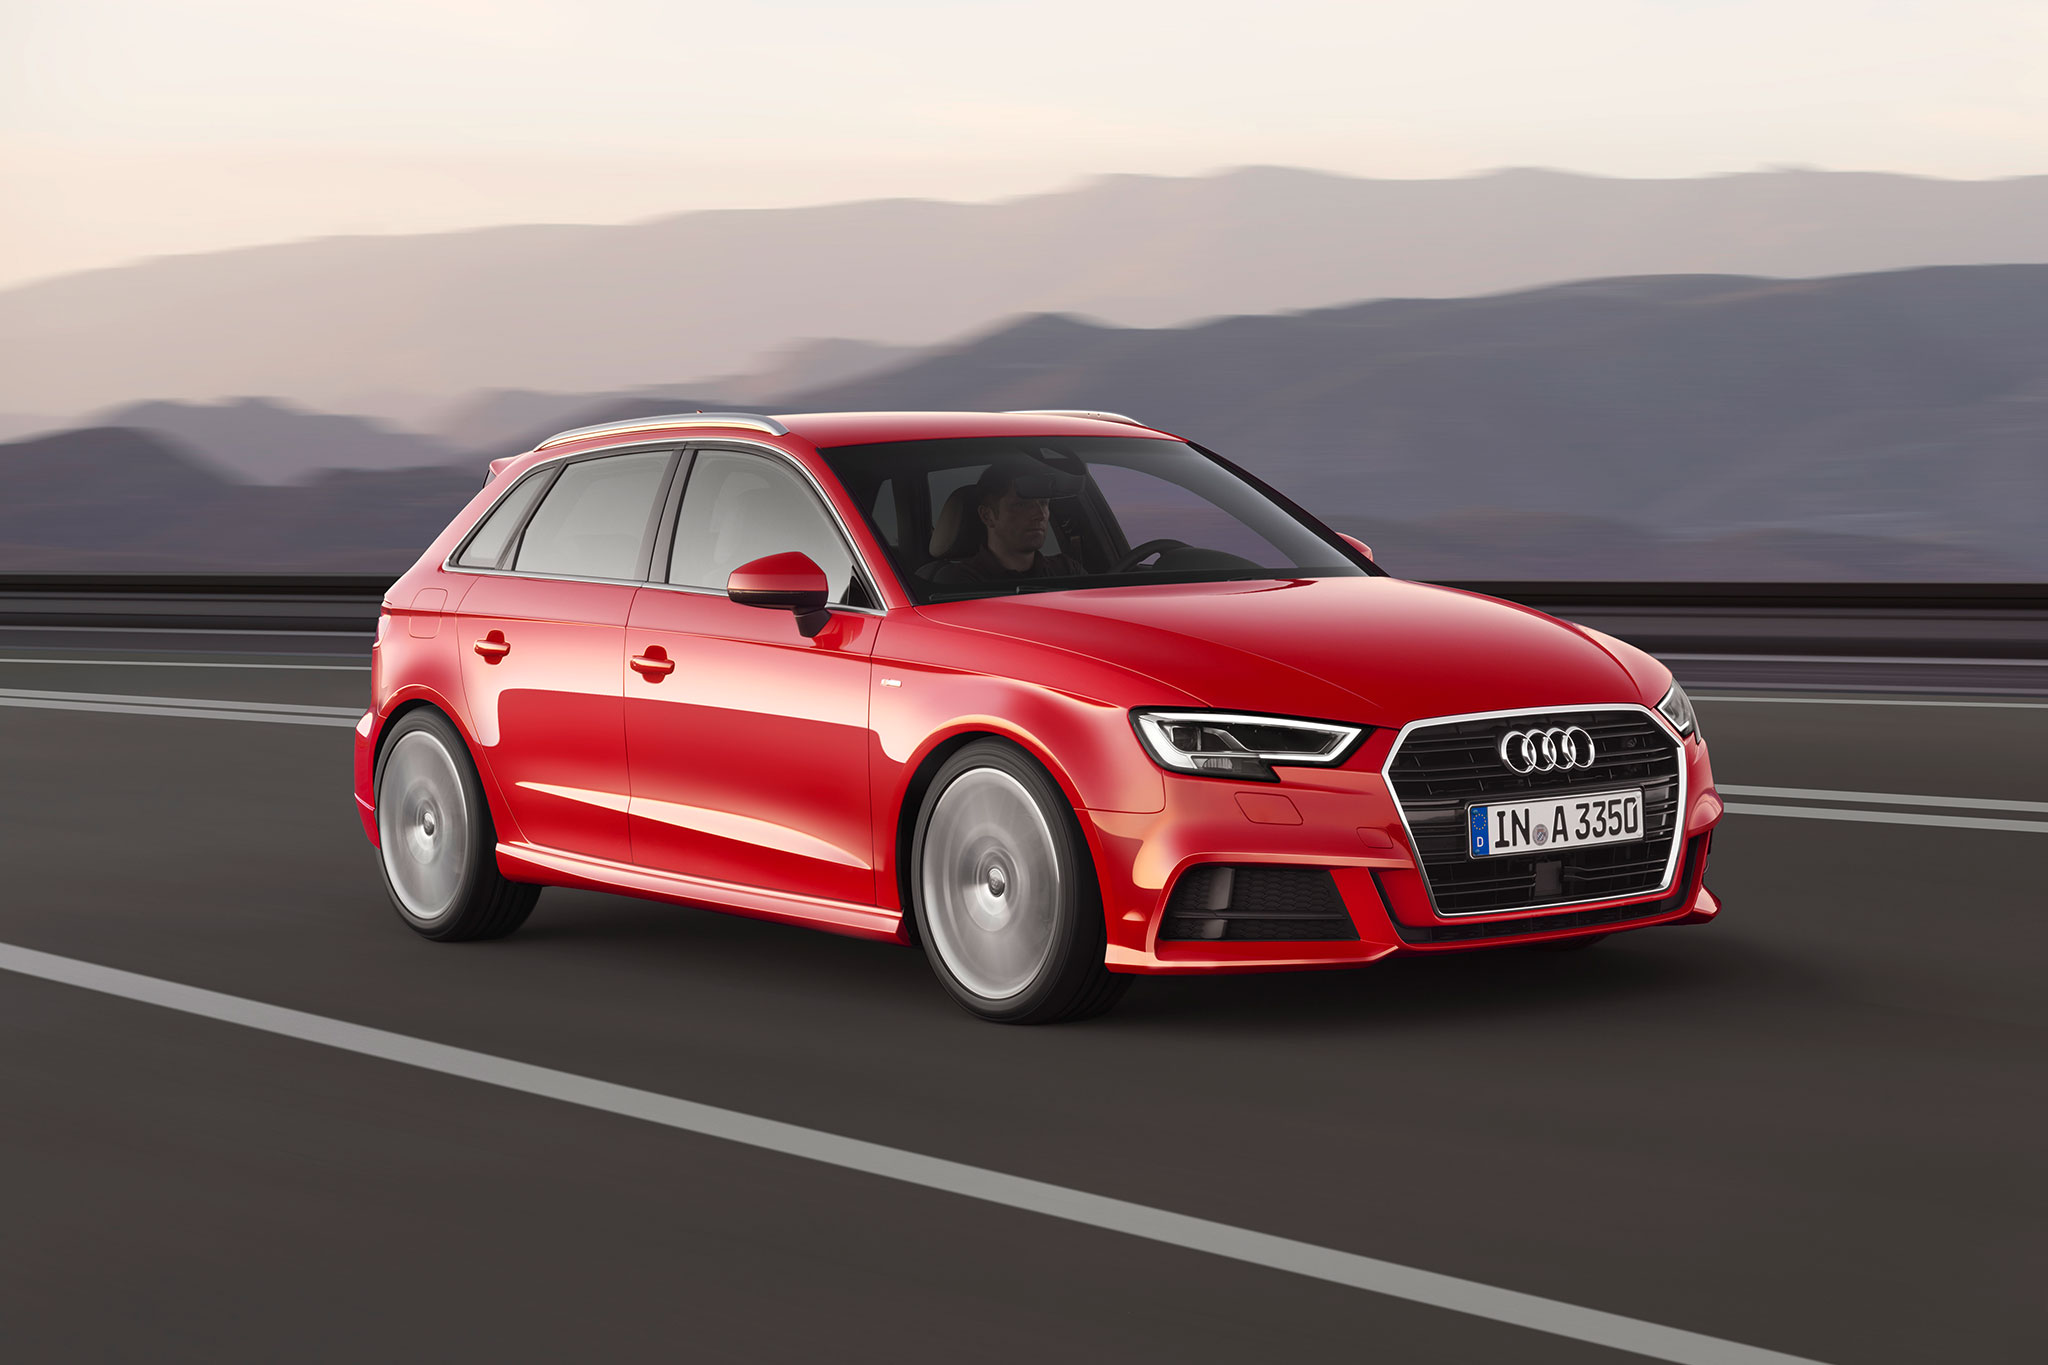 2048x1365 > Audi A3 Wallpapers